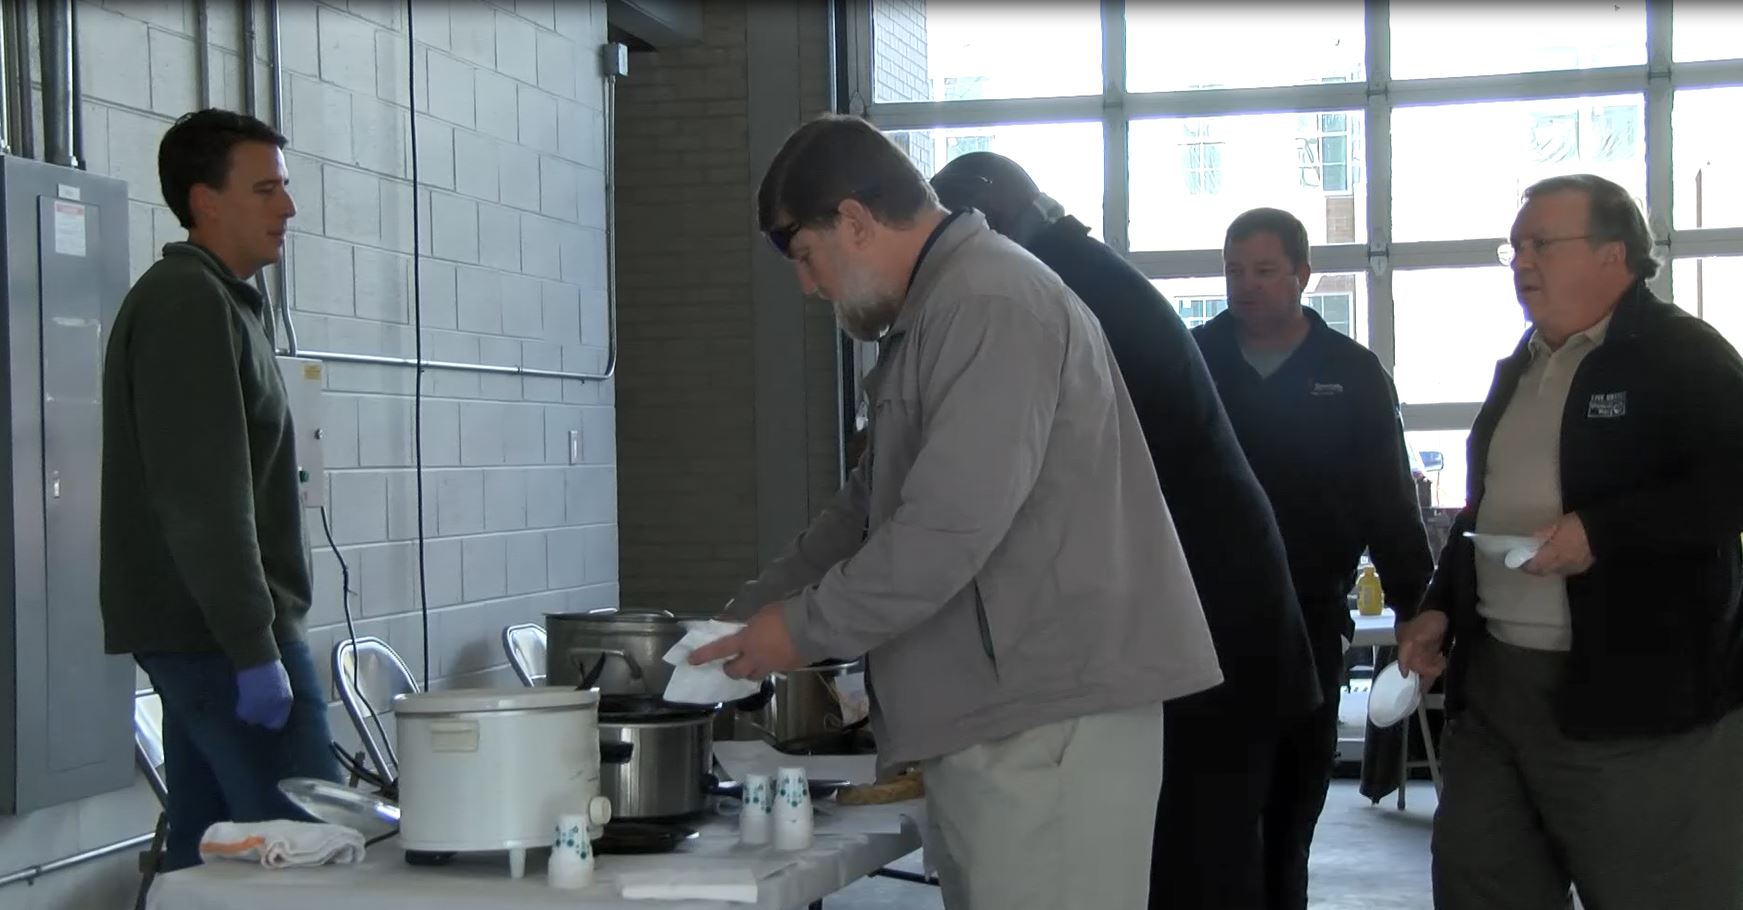 chili cookoff_527768